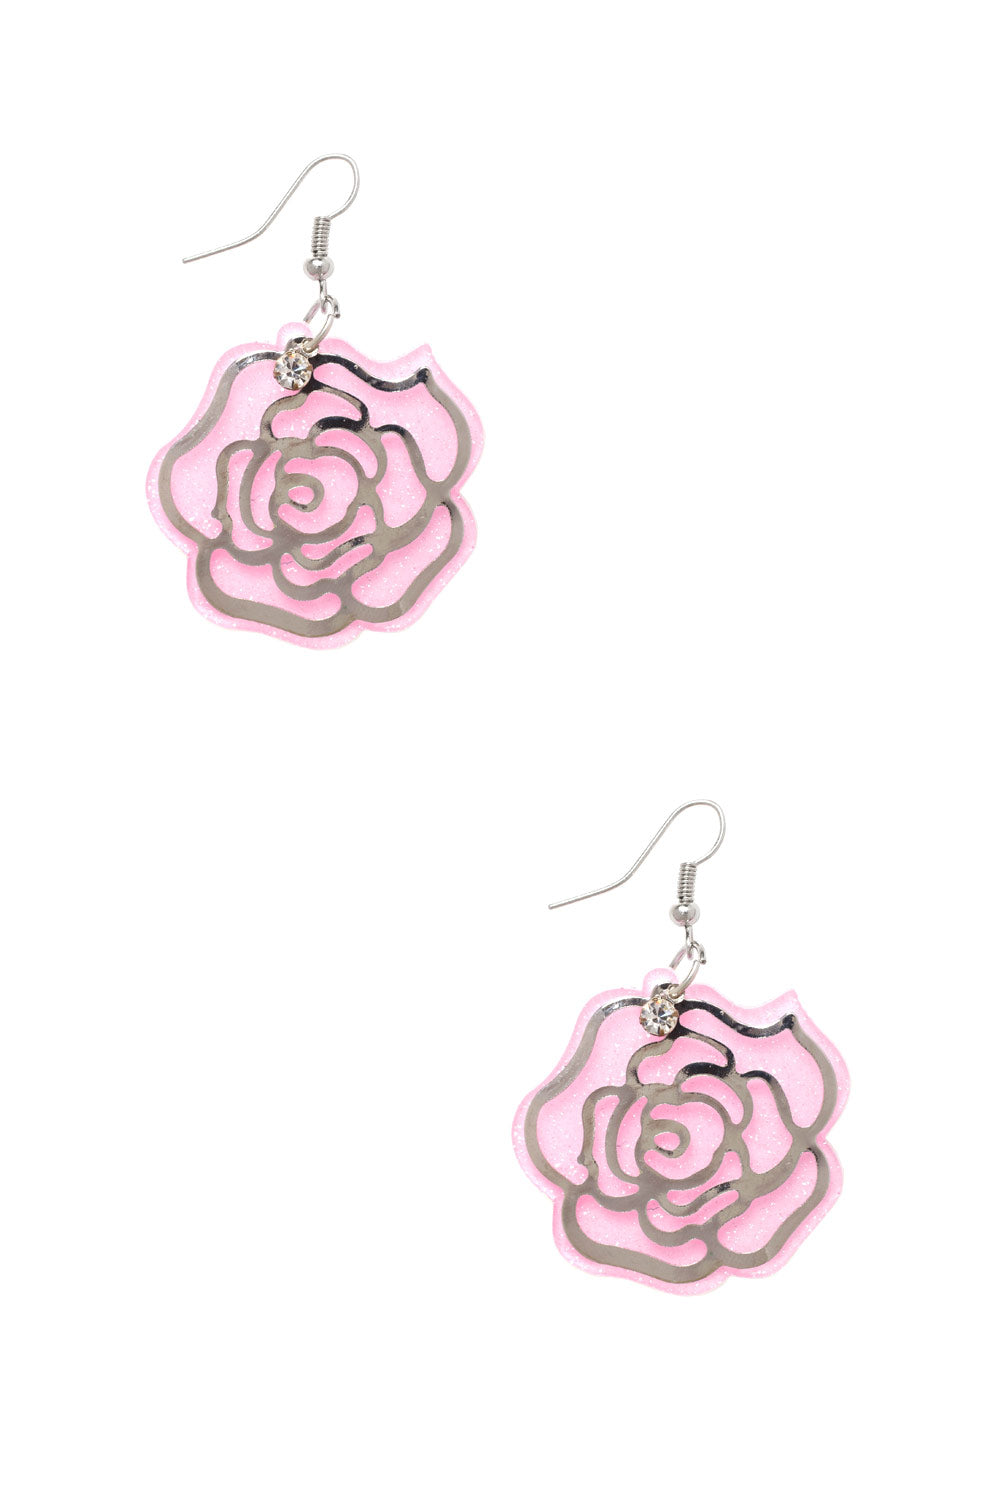 Type 2 Rosy Remembrances Earrings